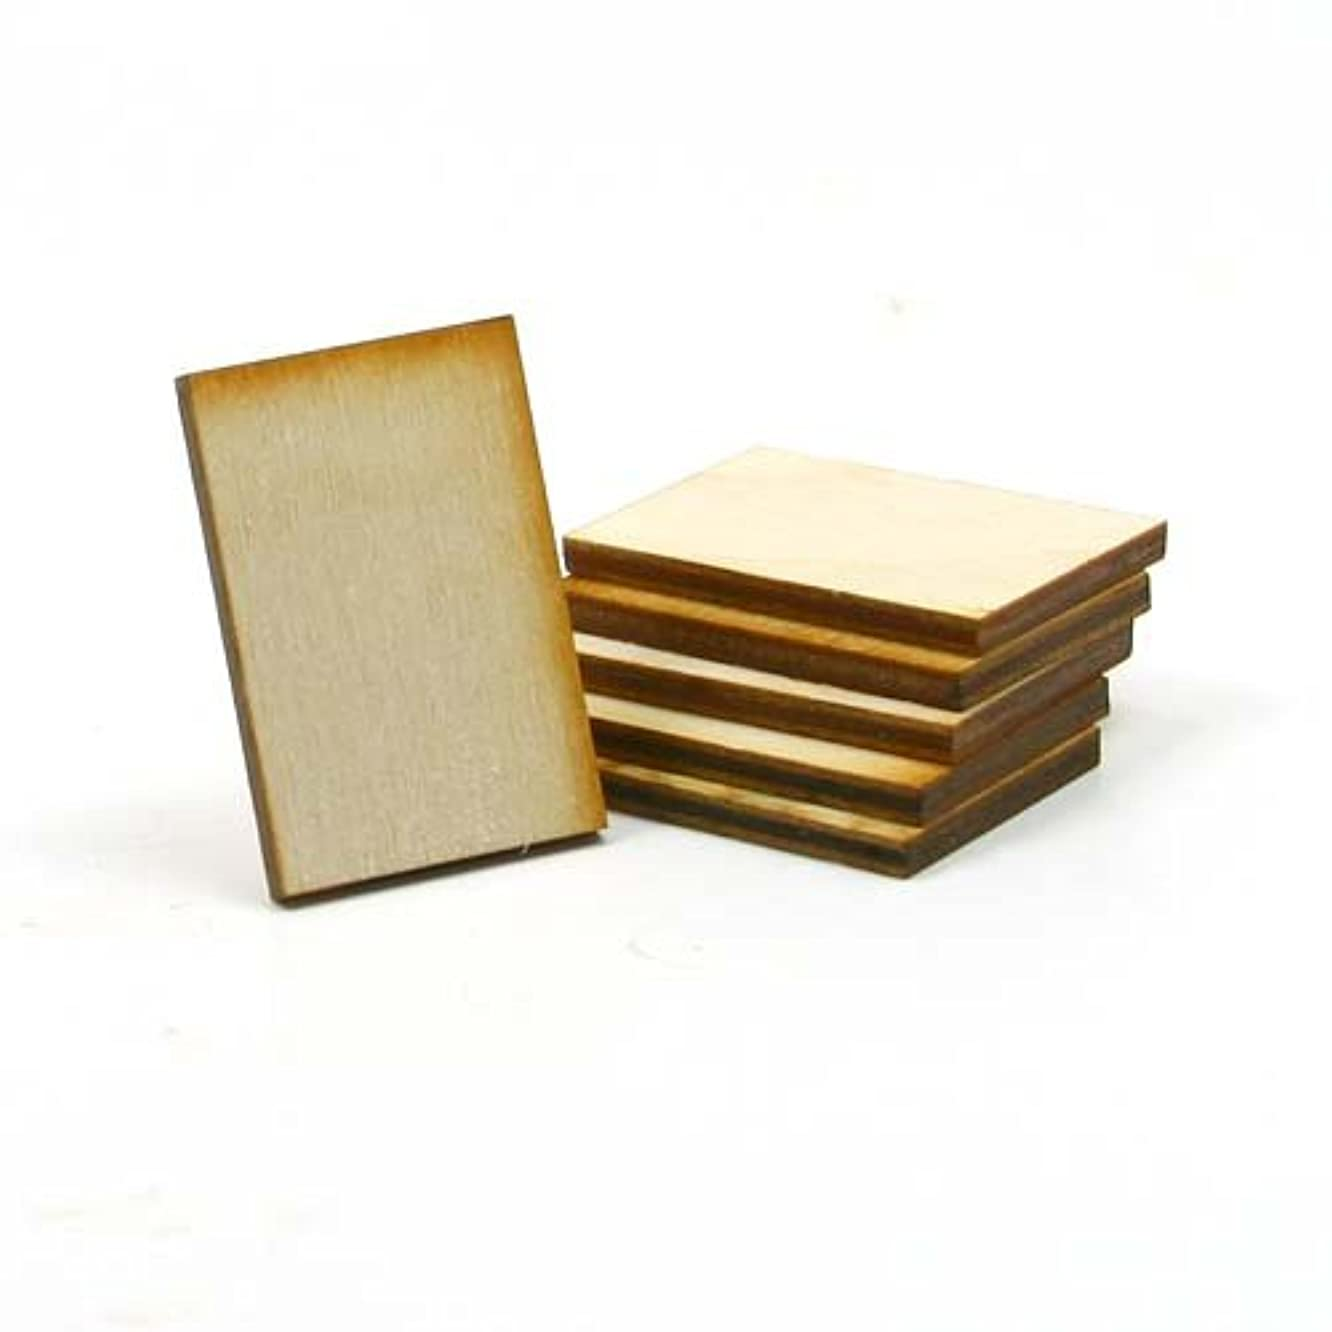 Mylittlewoodshop - Pkg of 25 - Rectangle - 1-1/2 inches by 1 inch with square corners unfinished wood(LC-RTSQ04-26)